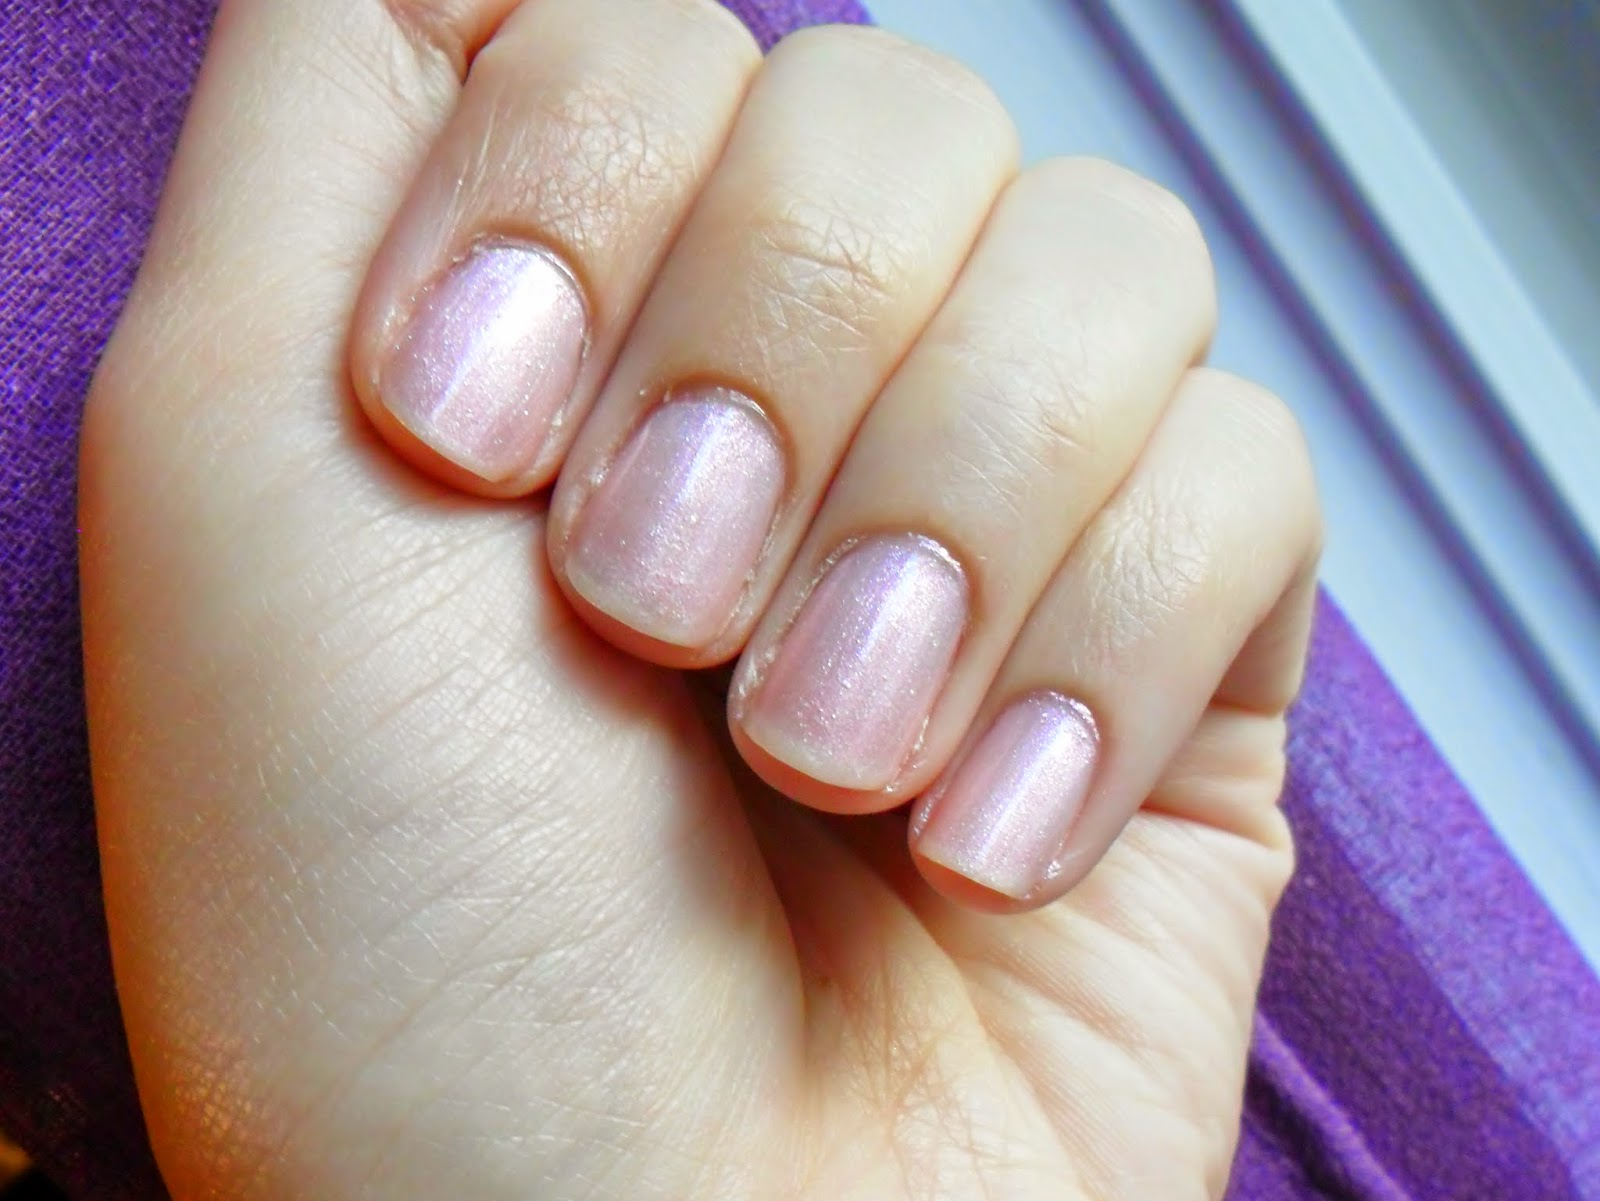 my beauty full adventure: NOTD: Revlon Colorstay Gel Envy Longwear ...